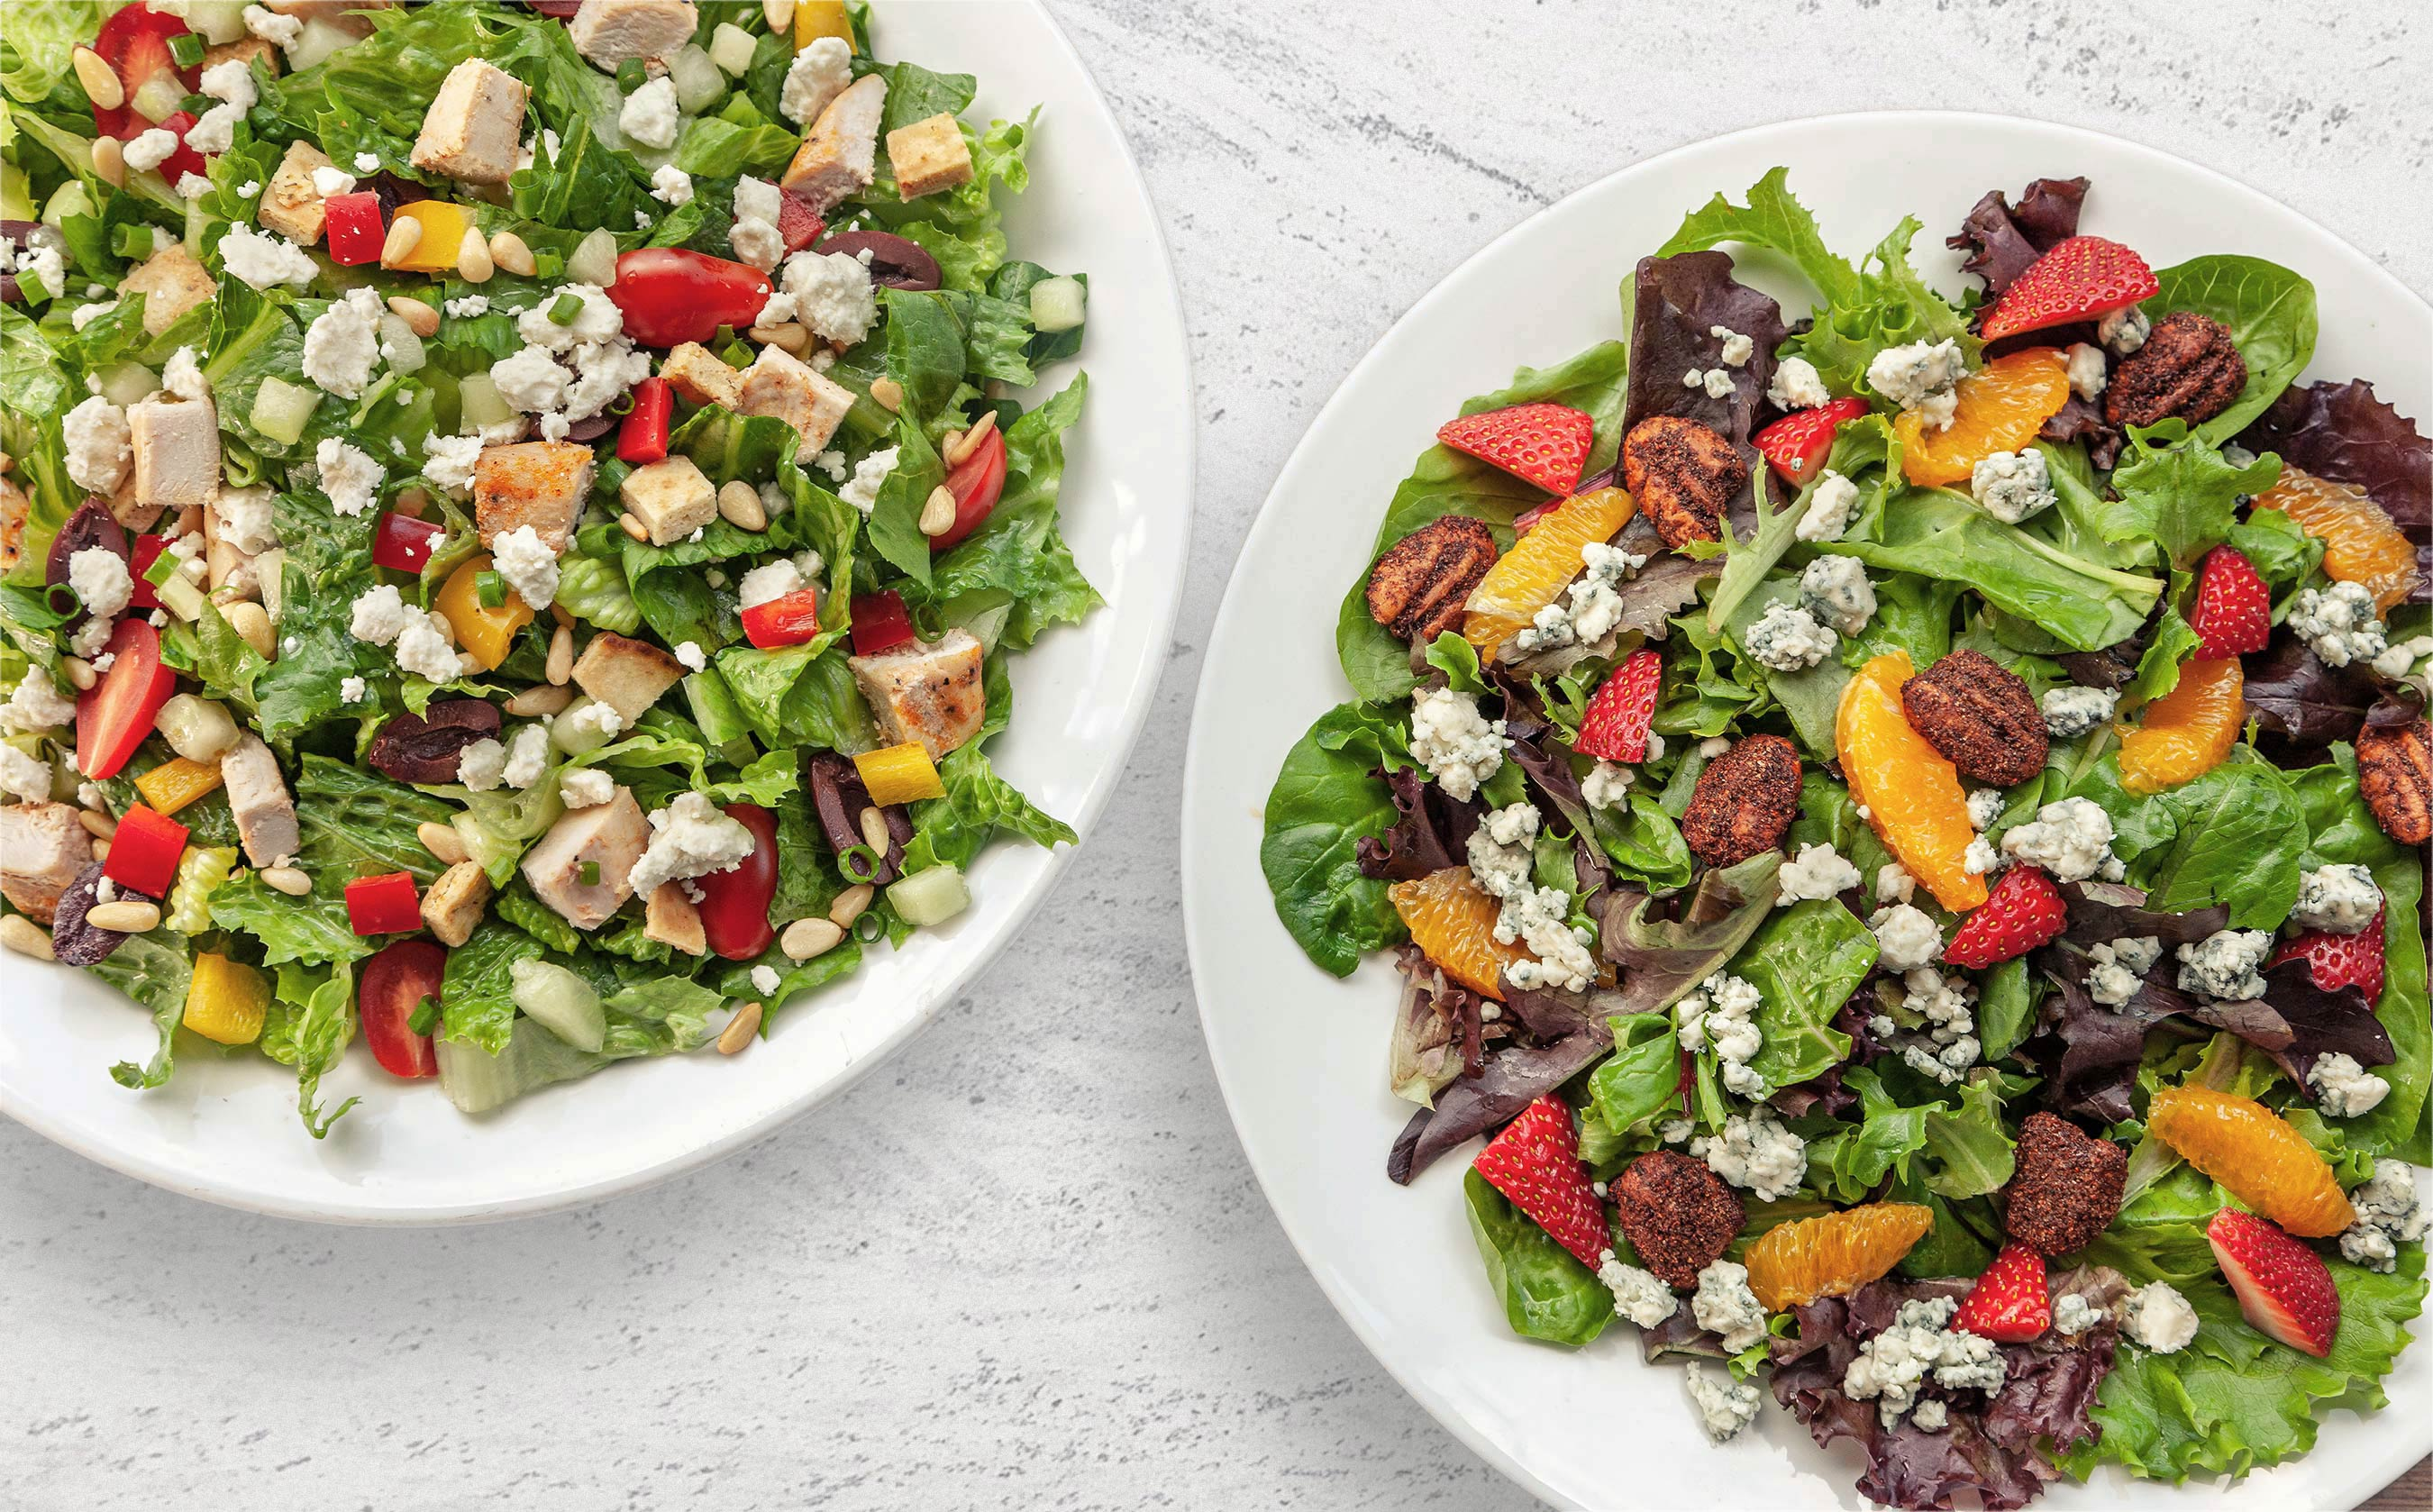 2 Salads w/ chicken, Feta, mandarin, strawberries, olives, pine nuts…